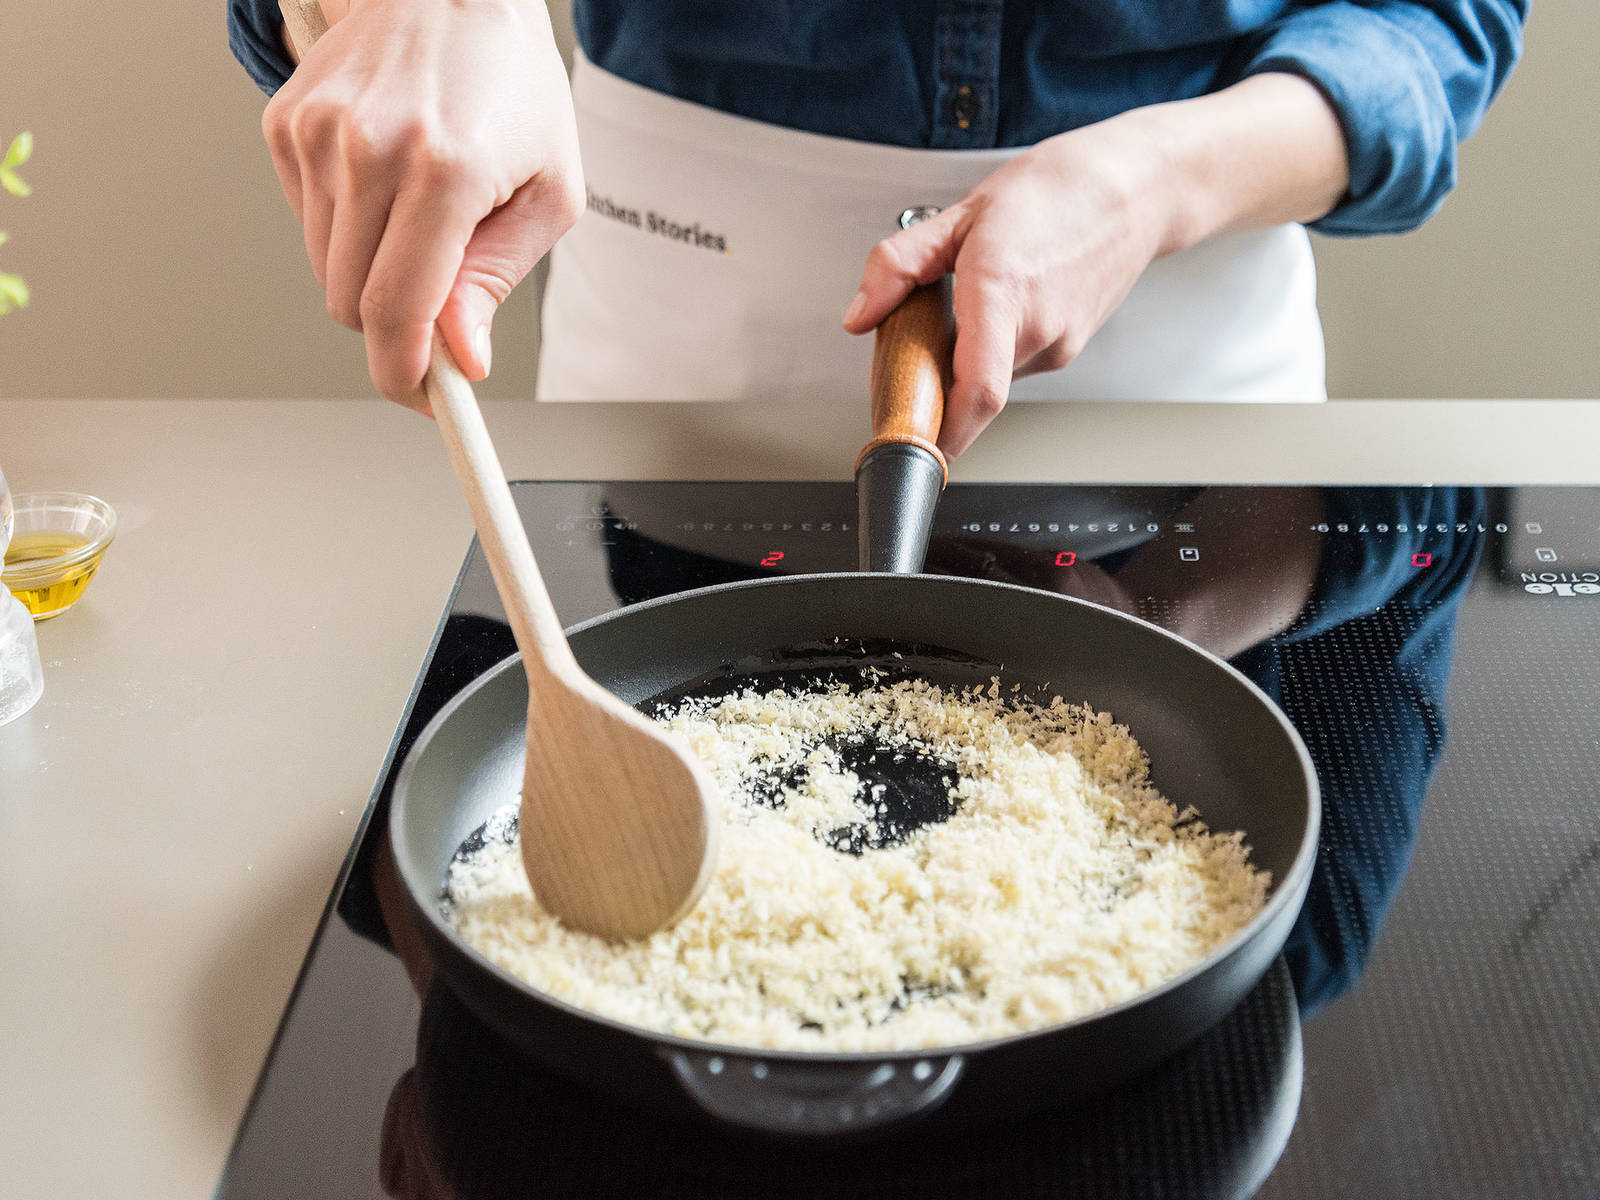 Heat olive oil in a frying pan, add panko and toast for approx. 2 – 3 min. until golden brown. Set aside.